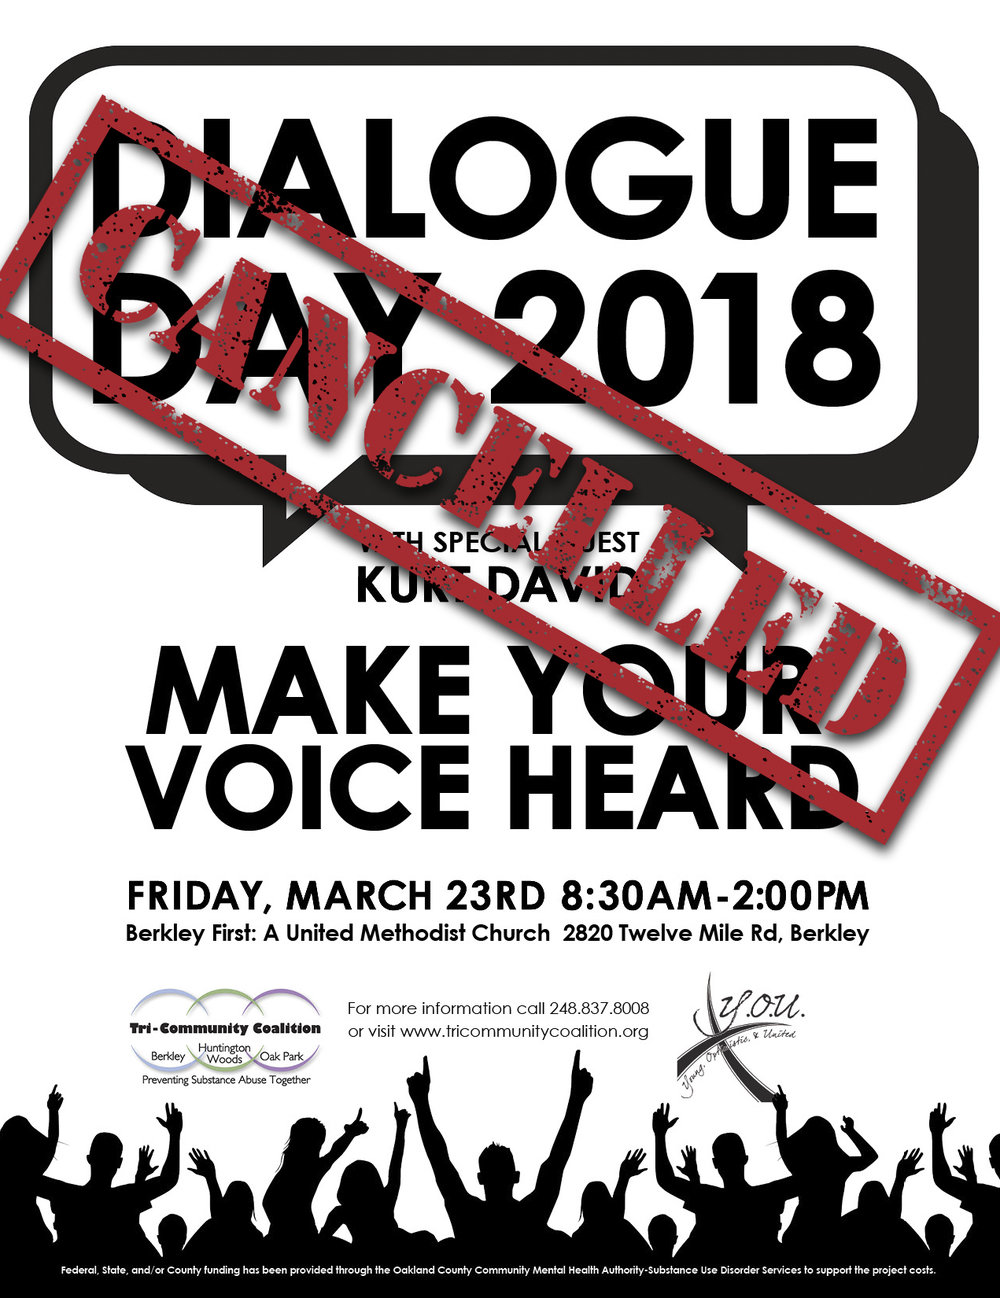 Dialogue Day 2018 Flyer cancelled.jpg